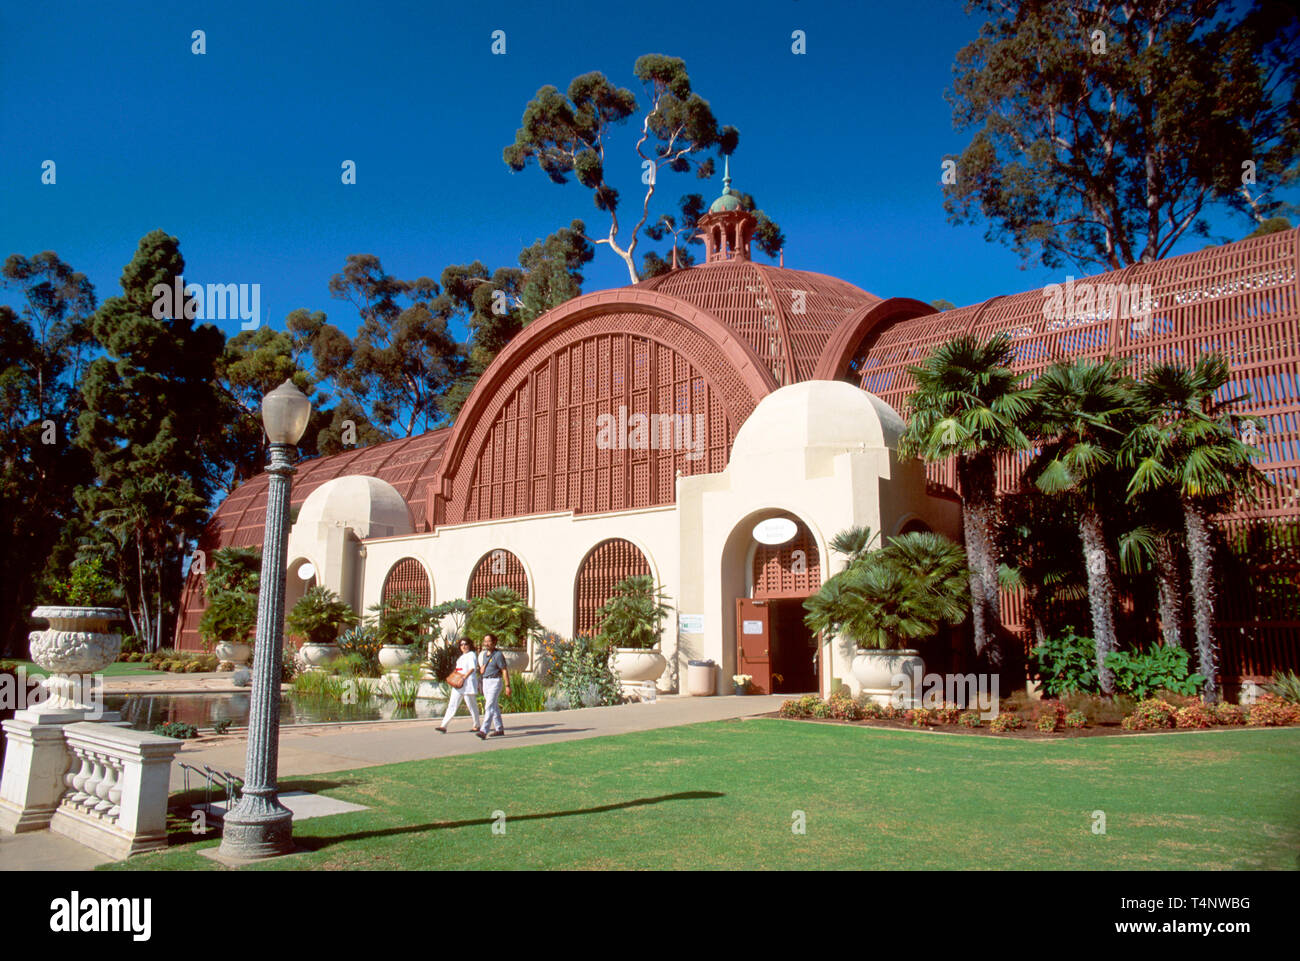 California San Diego Balboa Park built for Exposition Botanical Building visitors - Stock Image